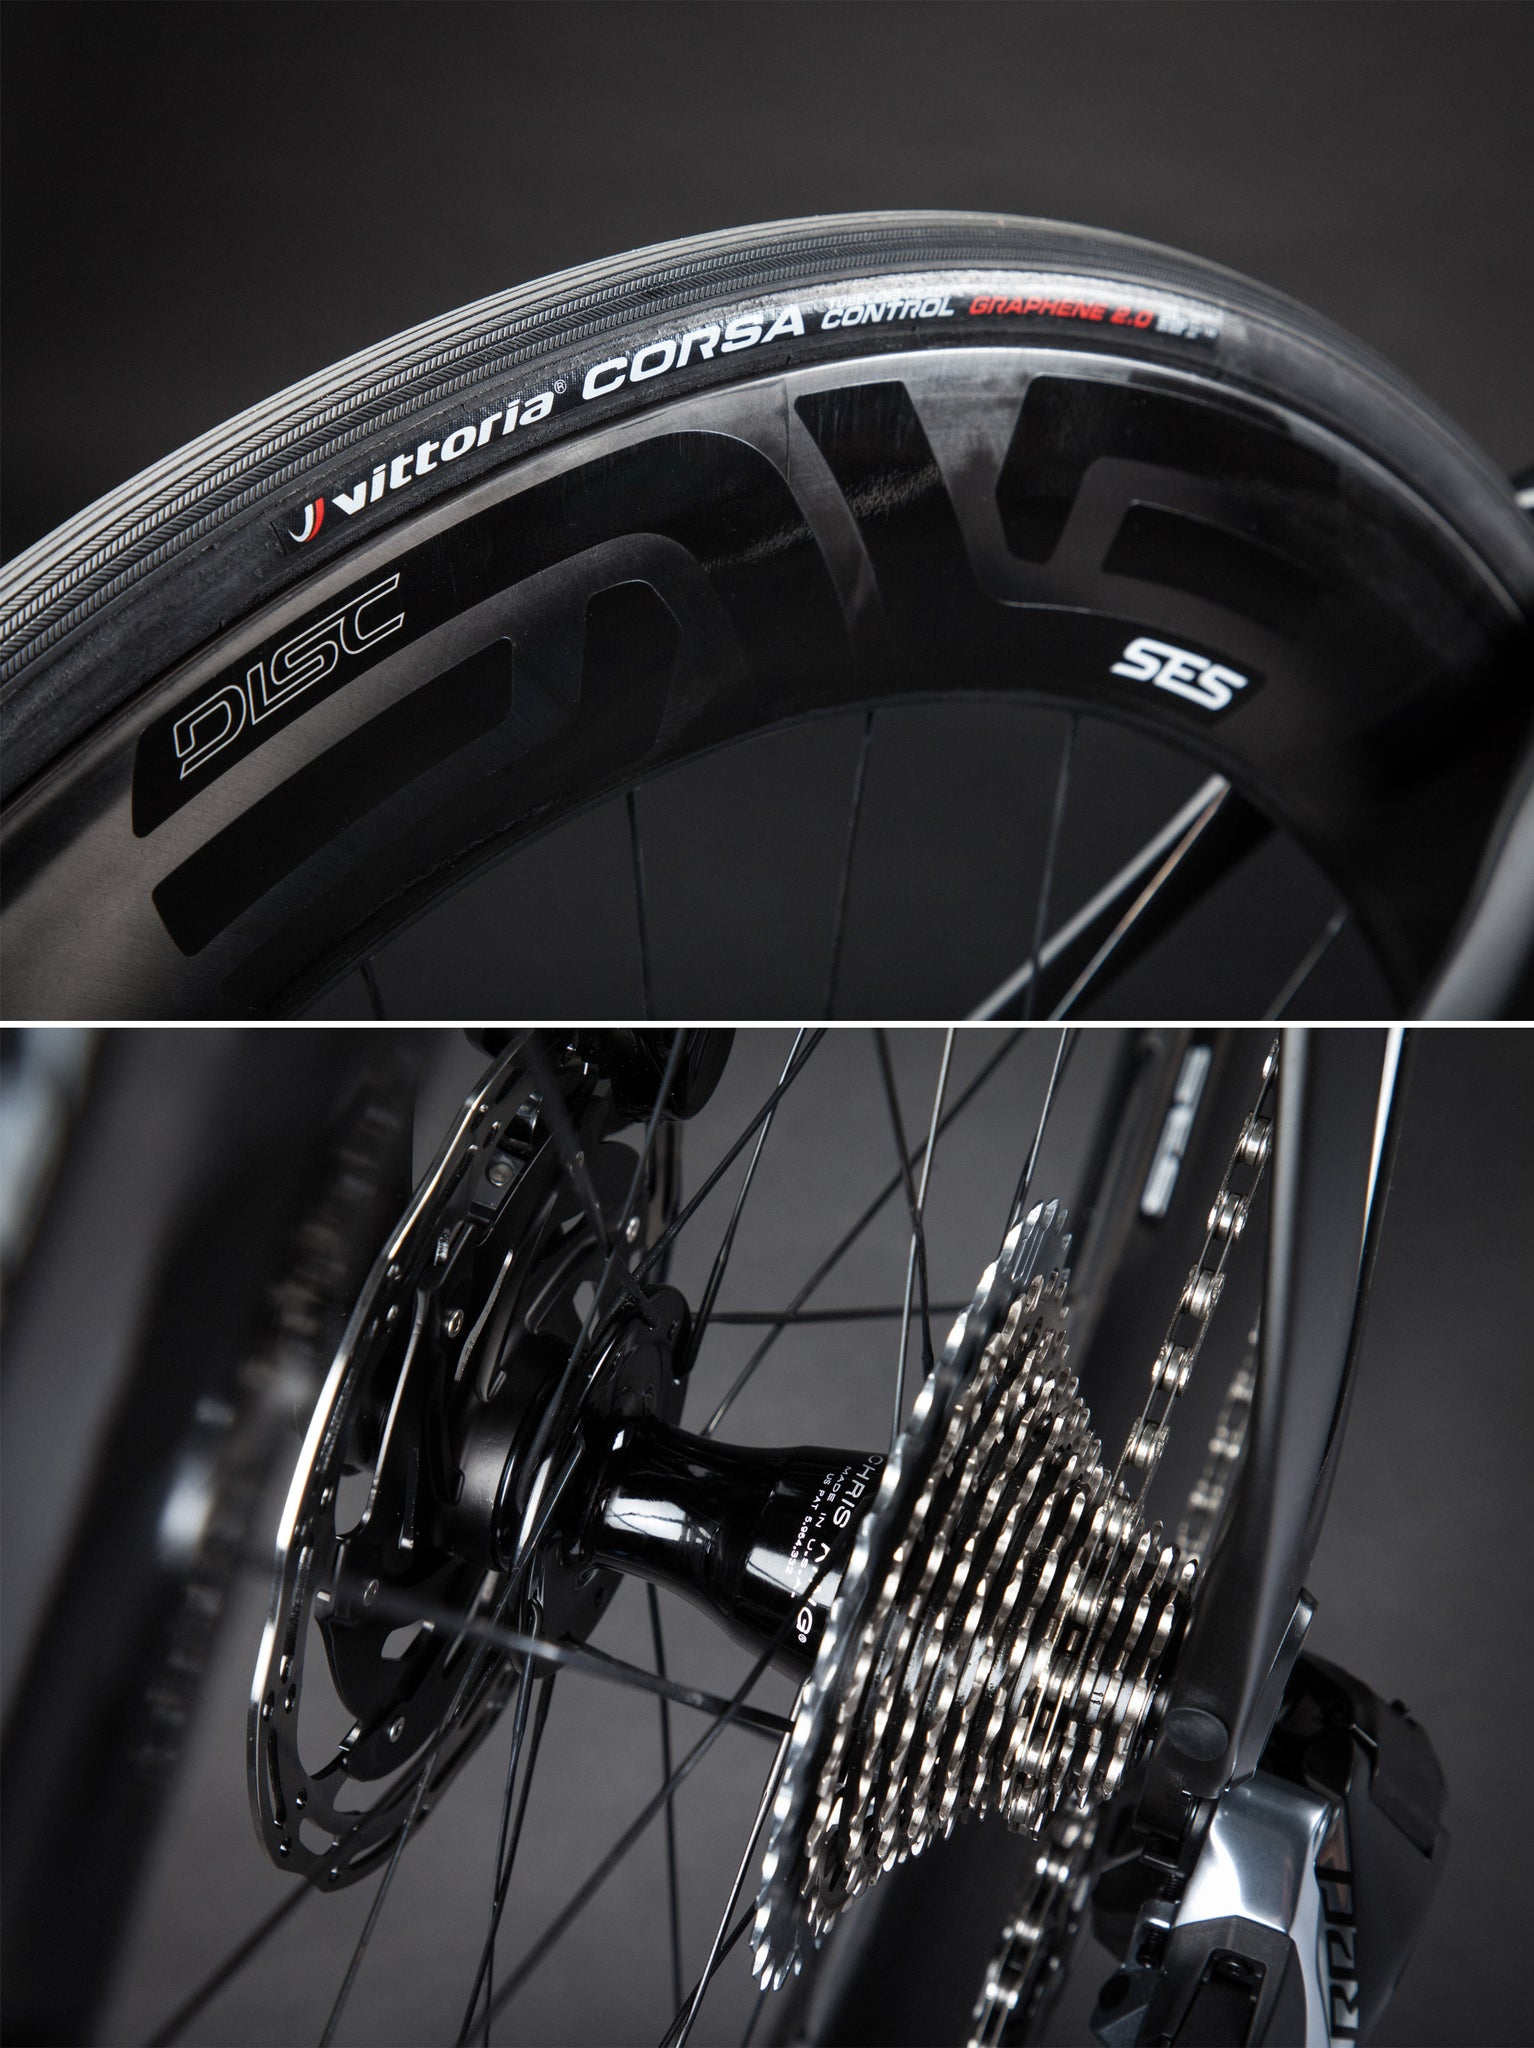 pinarello bolide wheels enve 7.8 AR chris king